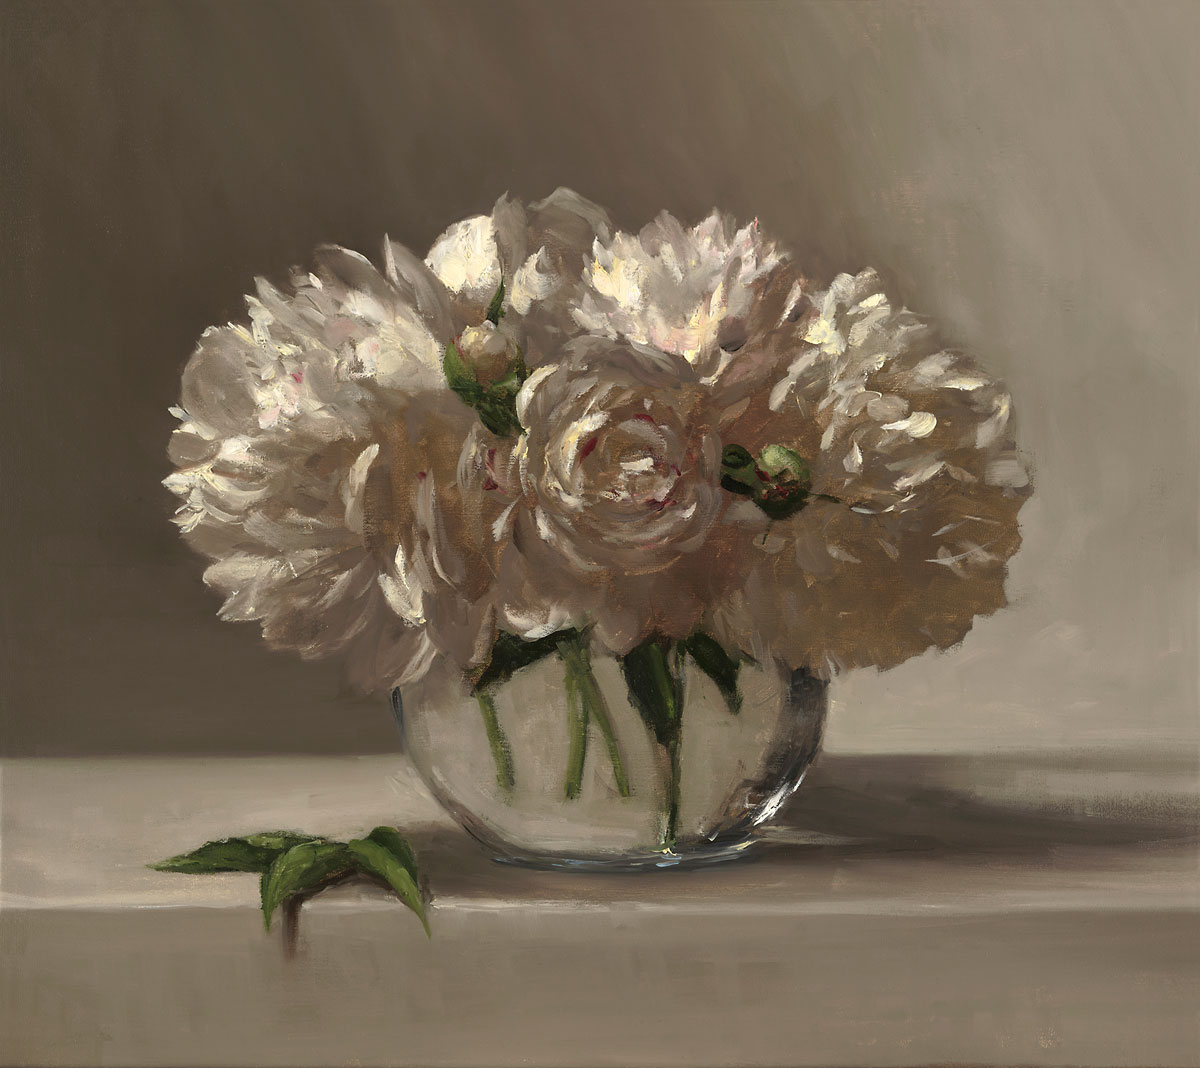 Sarah Lamb - Peonies in Glass Vase 18x16